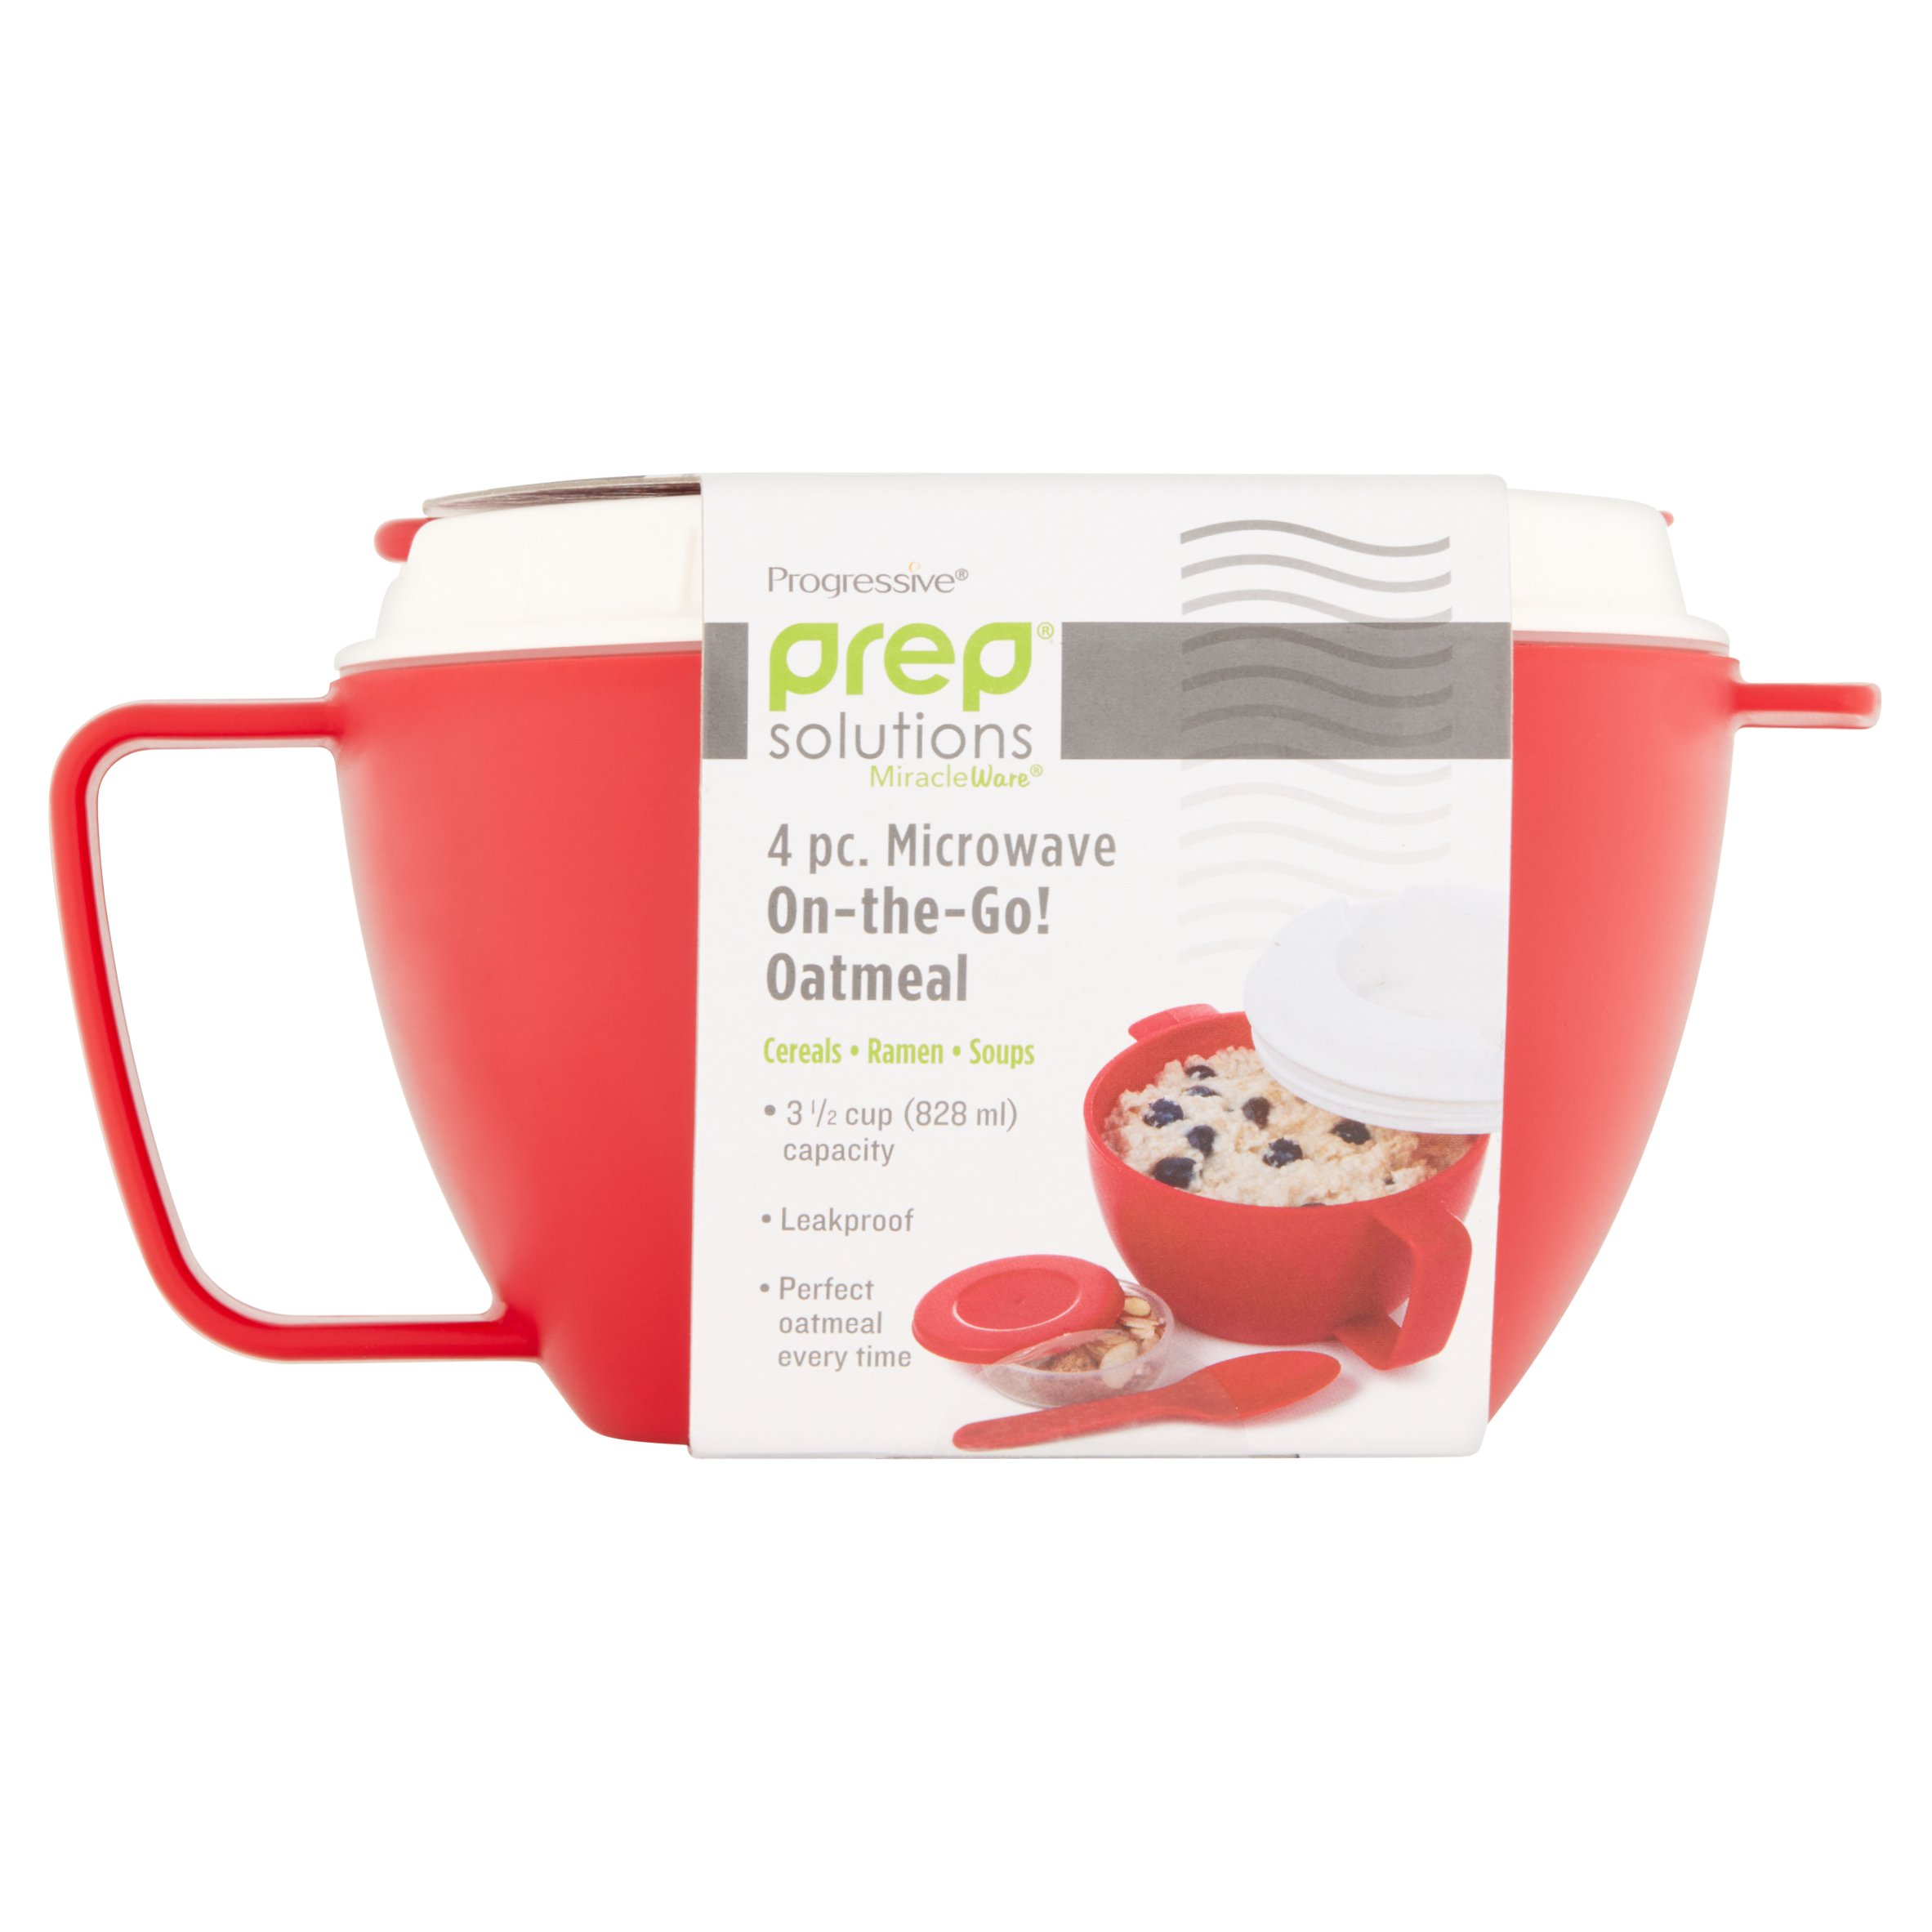 Progressive Prep Solutions MiracleWare 4 pc. Microwave On-the-Go Oatmeal